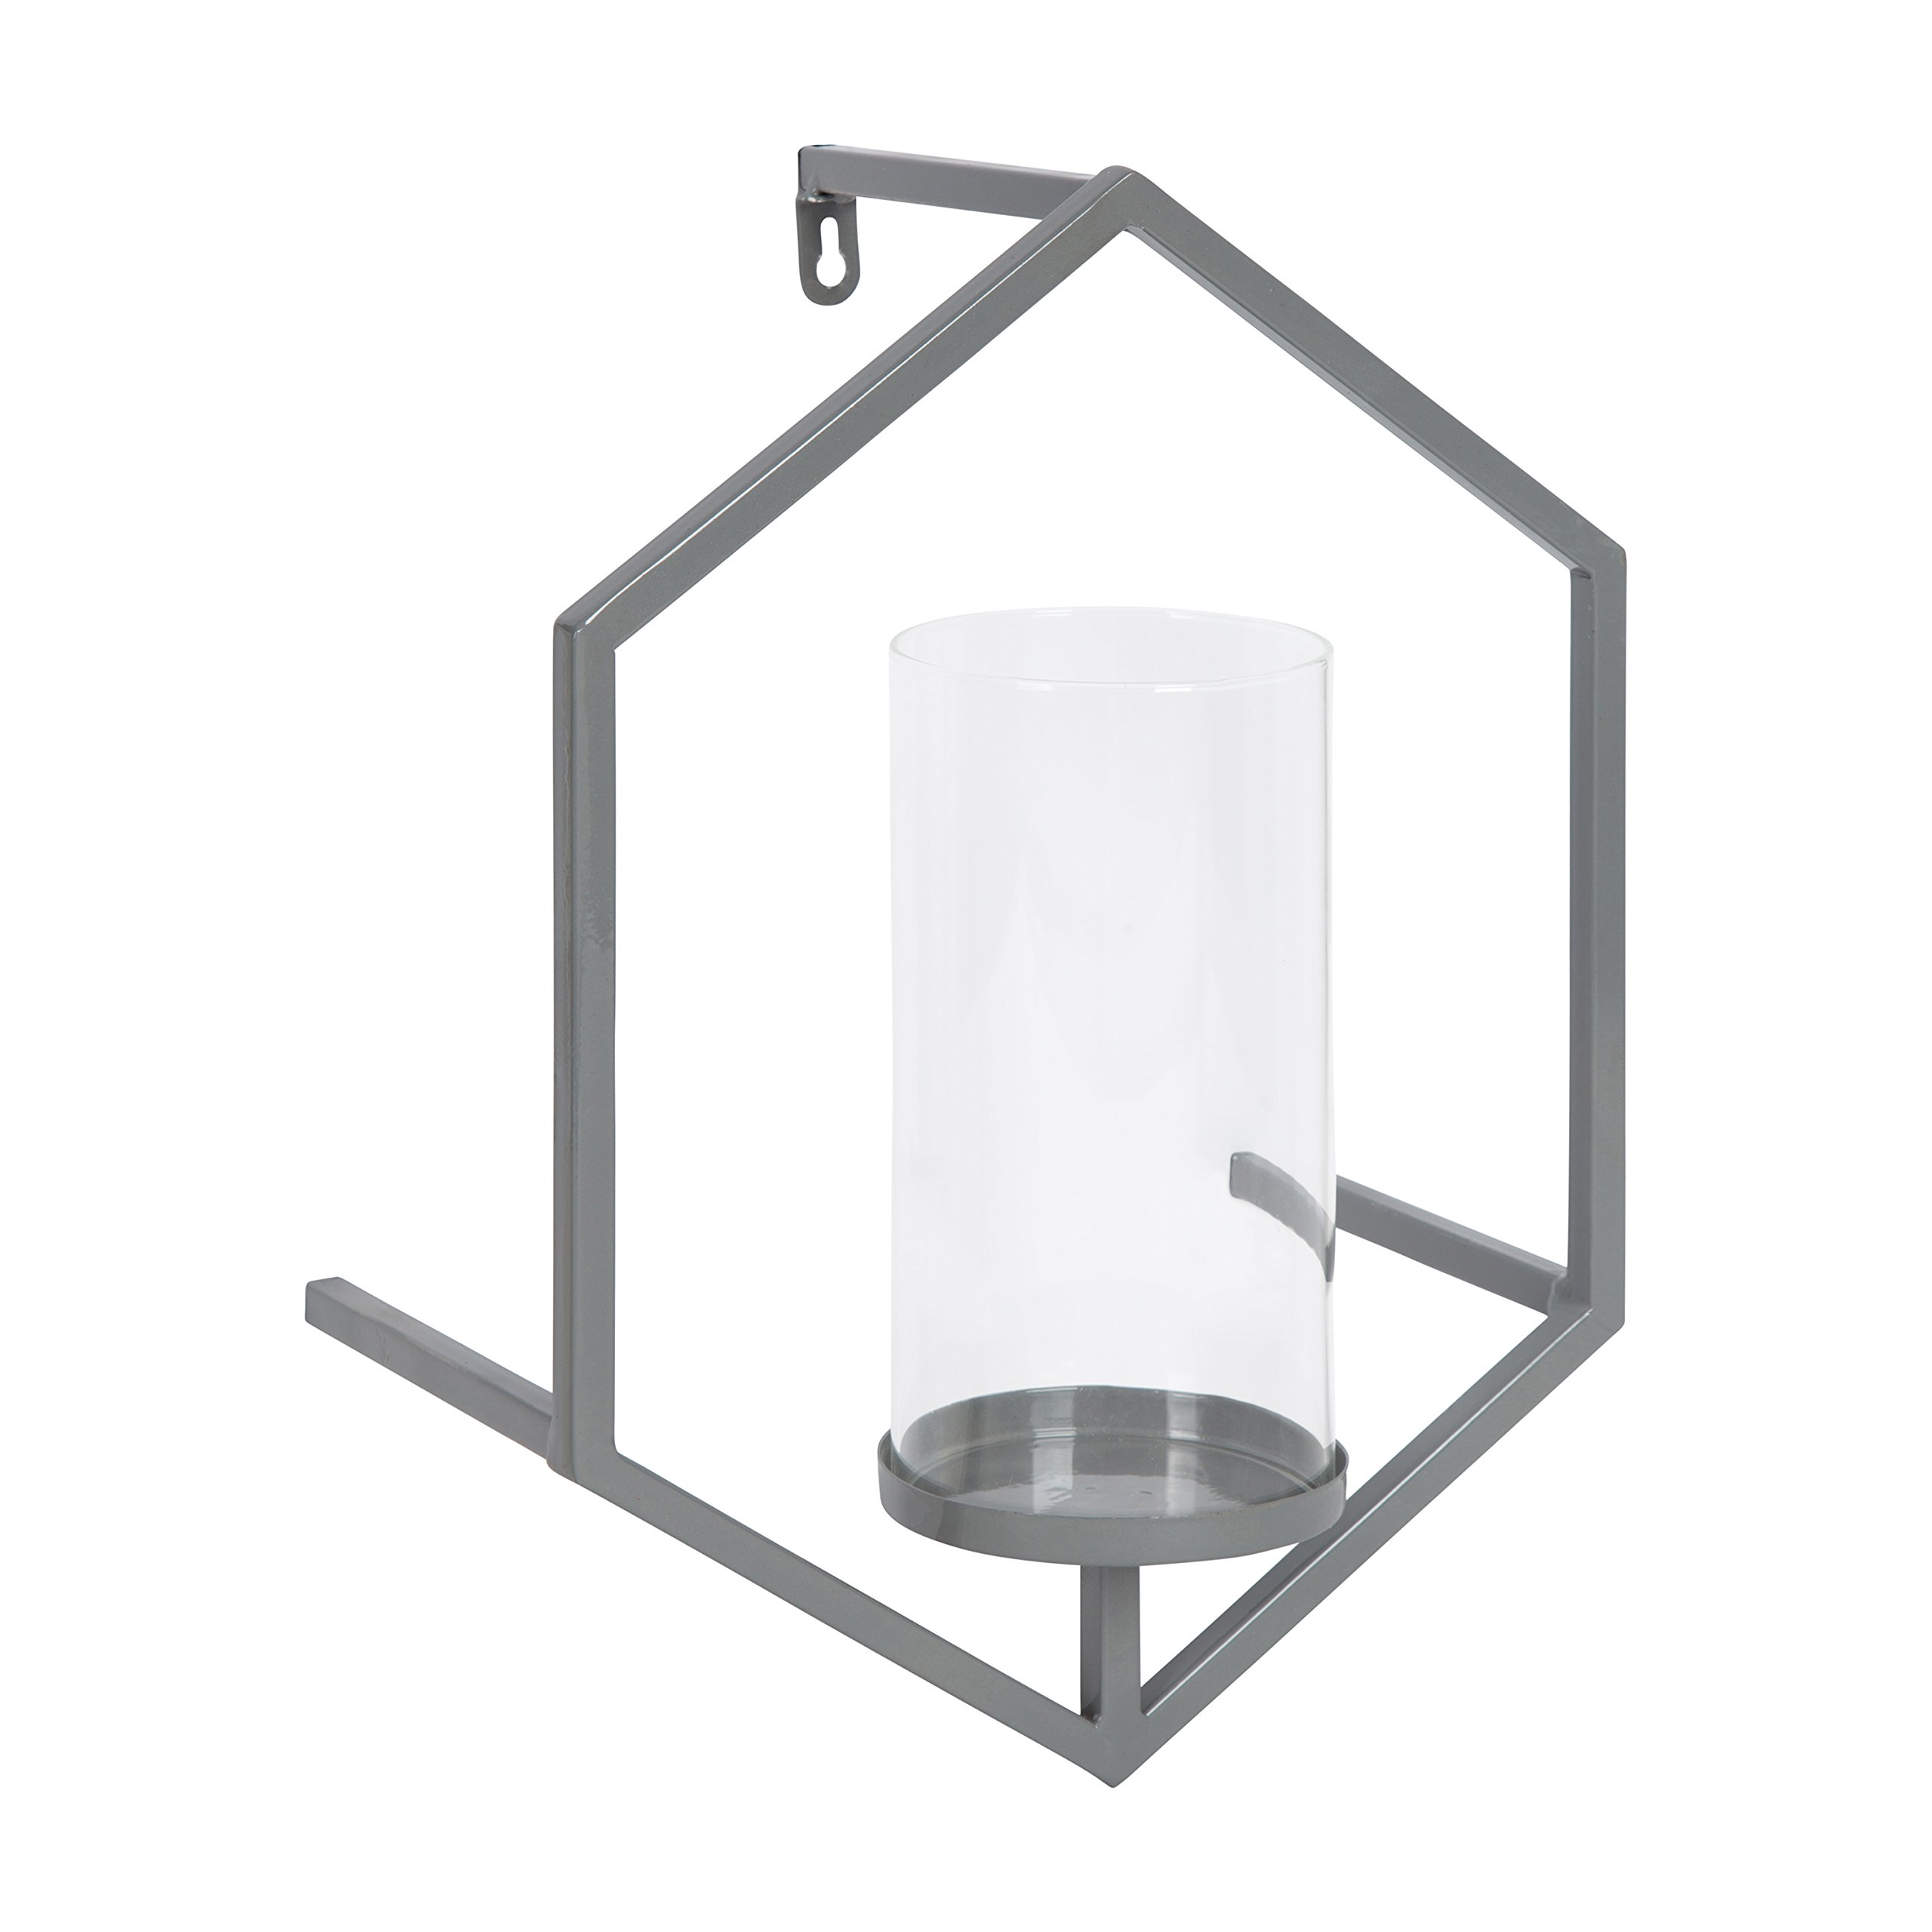 Kate and Laurel Curran Hexagon Metal Sconce Wall Candle Holder, with Glass Pillar, Gray